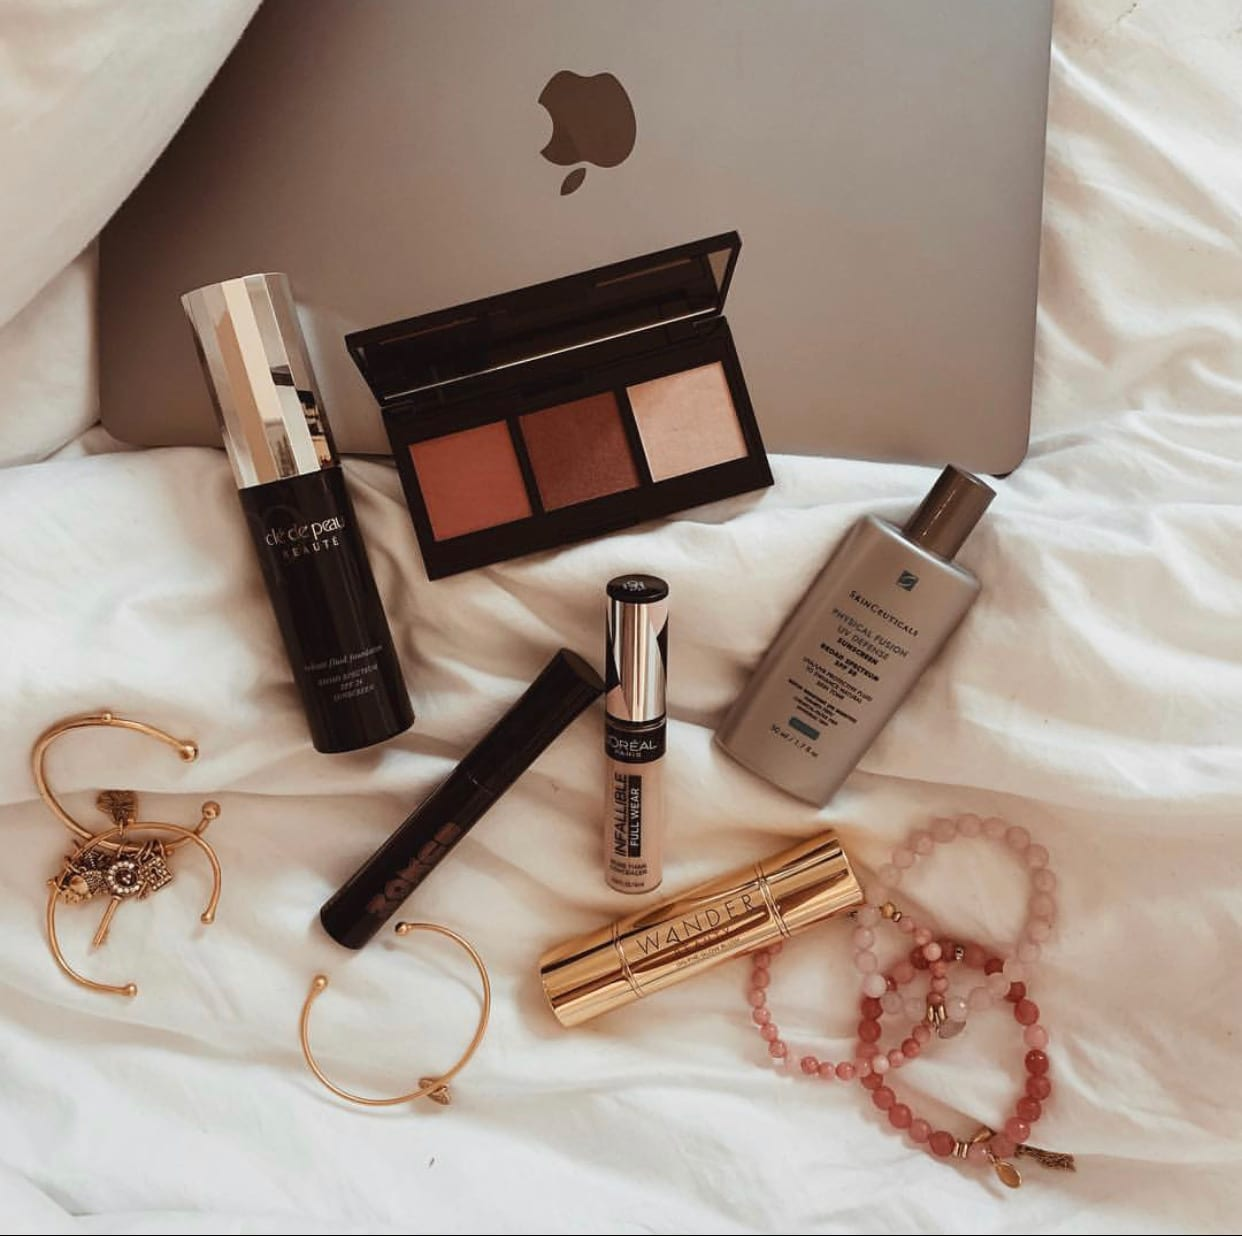 This is another flat lay featuring sunscreen, some makeup and jewelry.